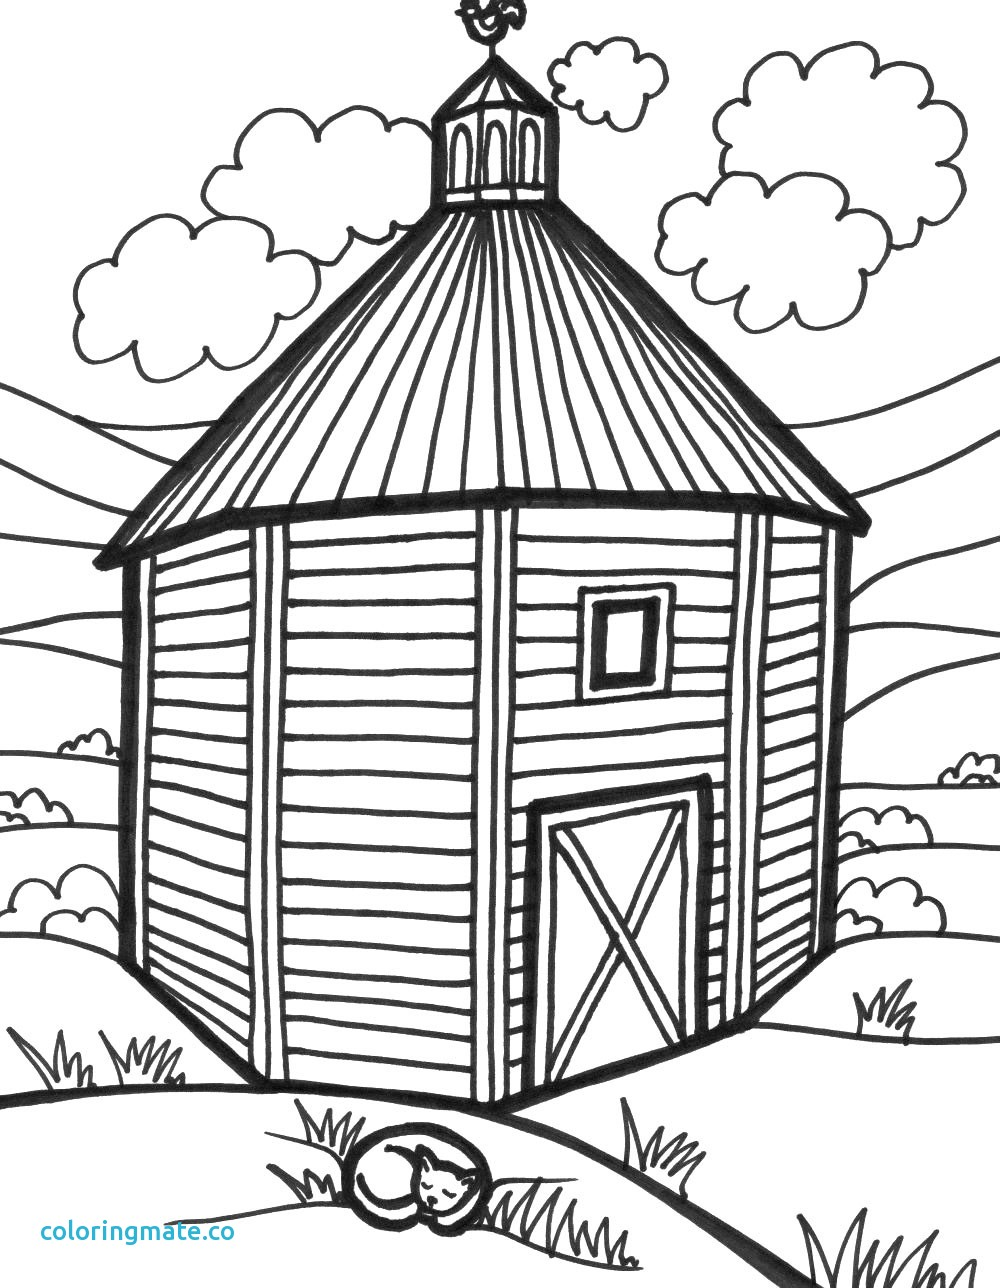 Barn clipart line drawing. Simple at getdrawings com